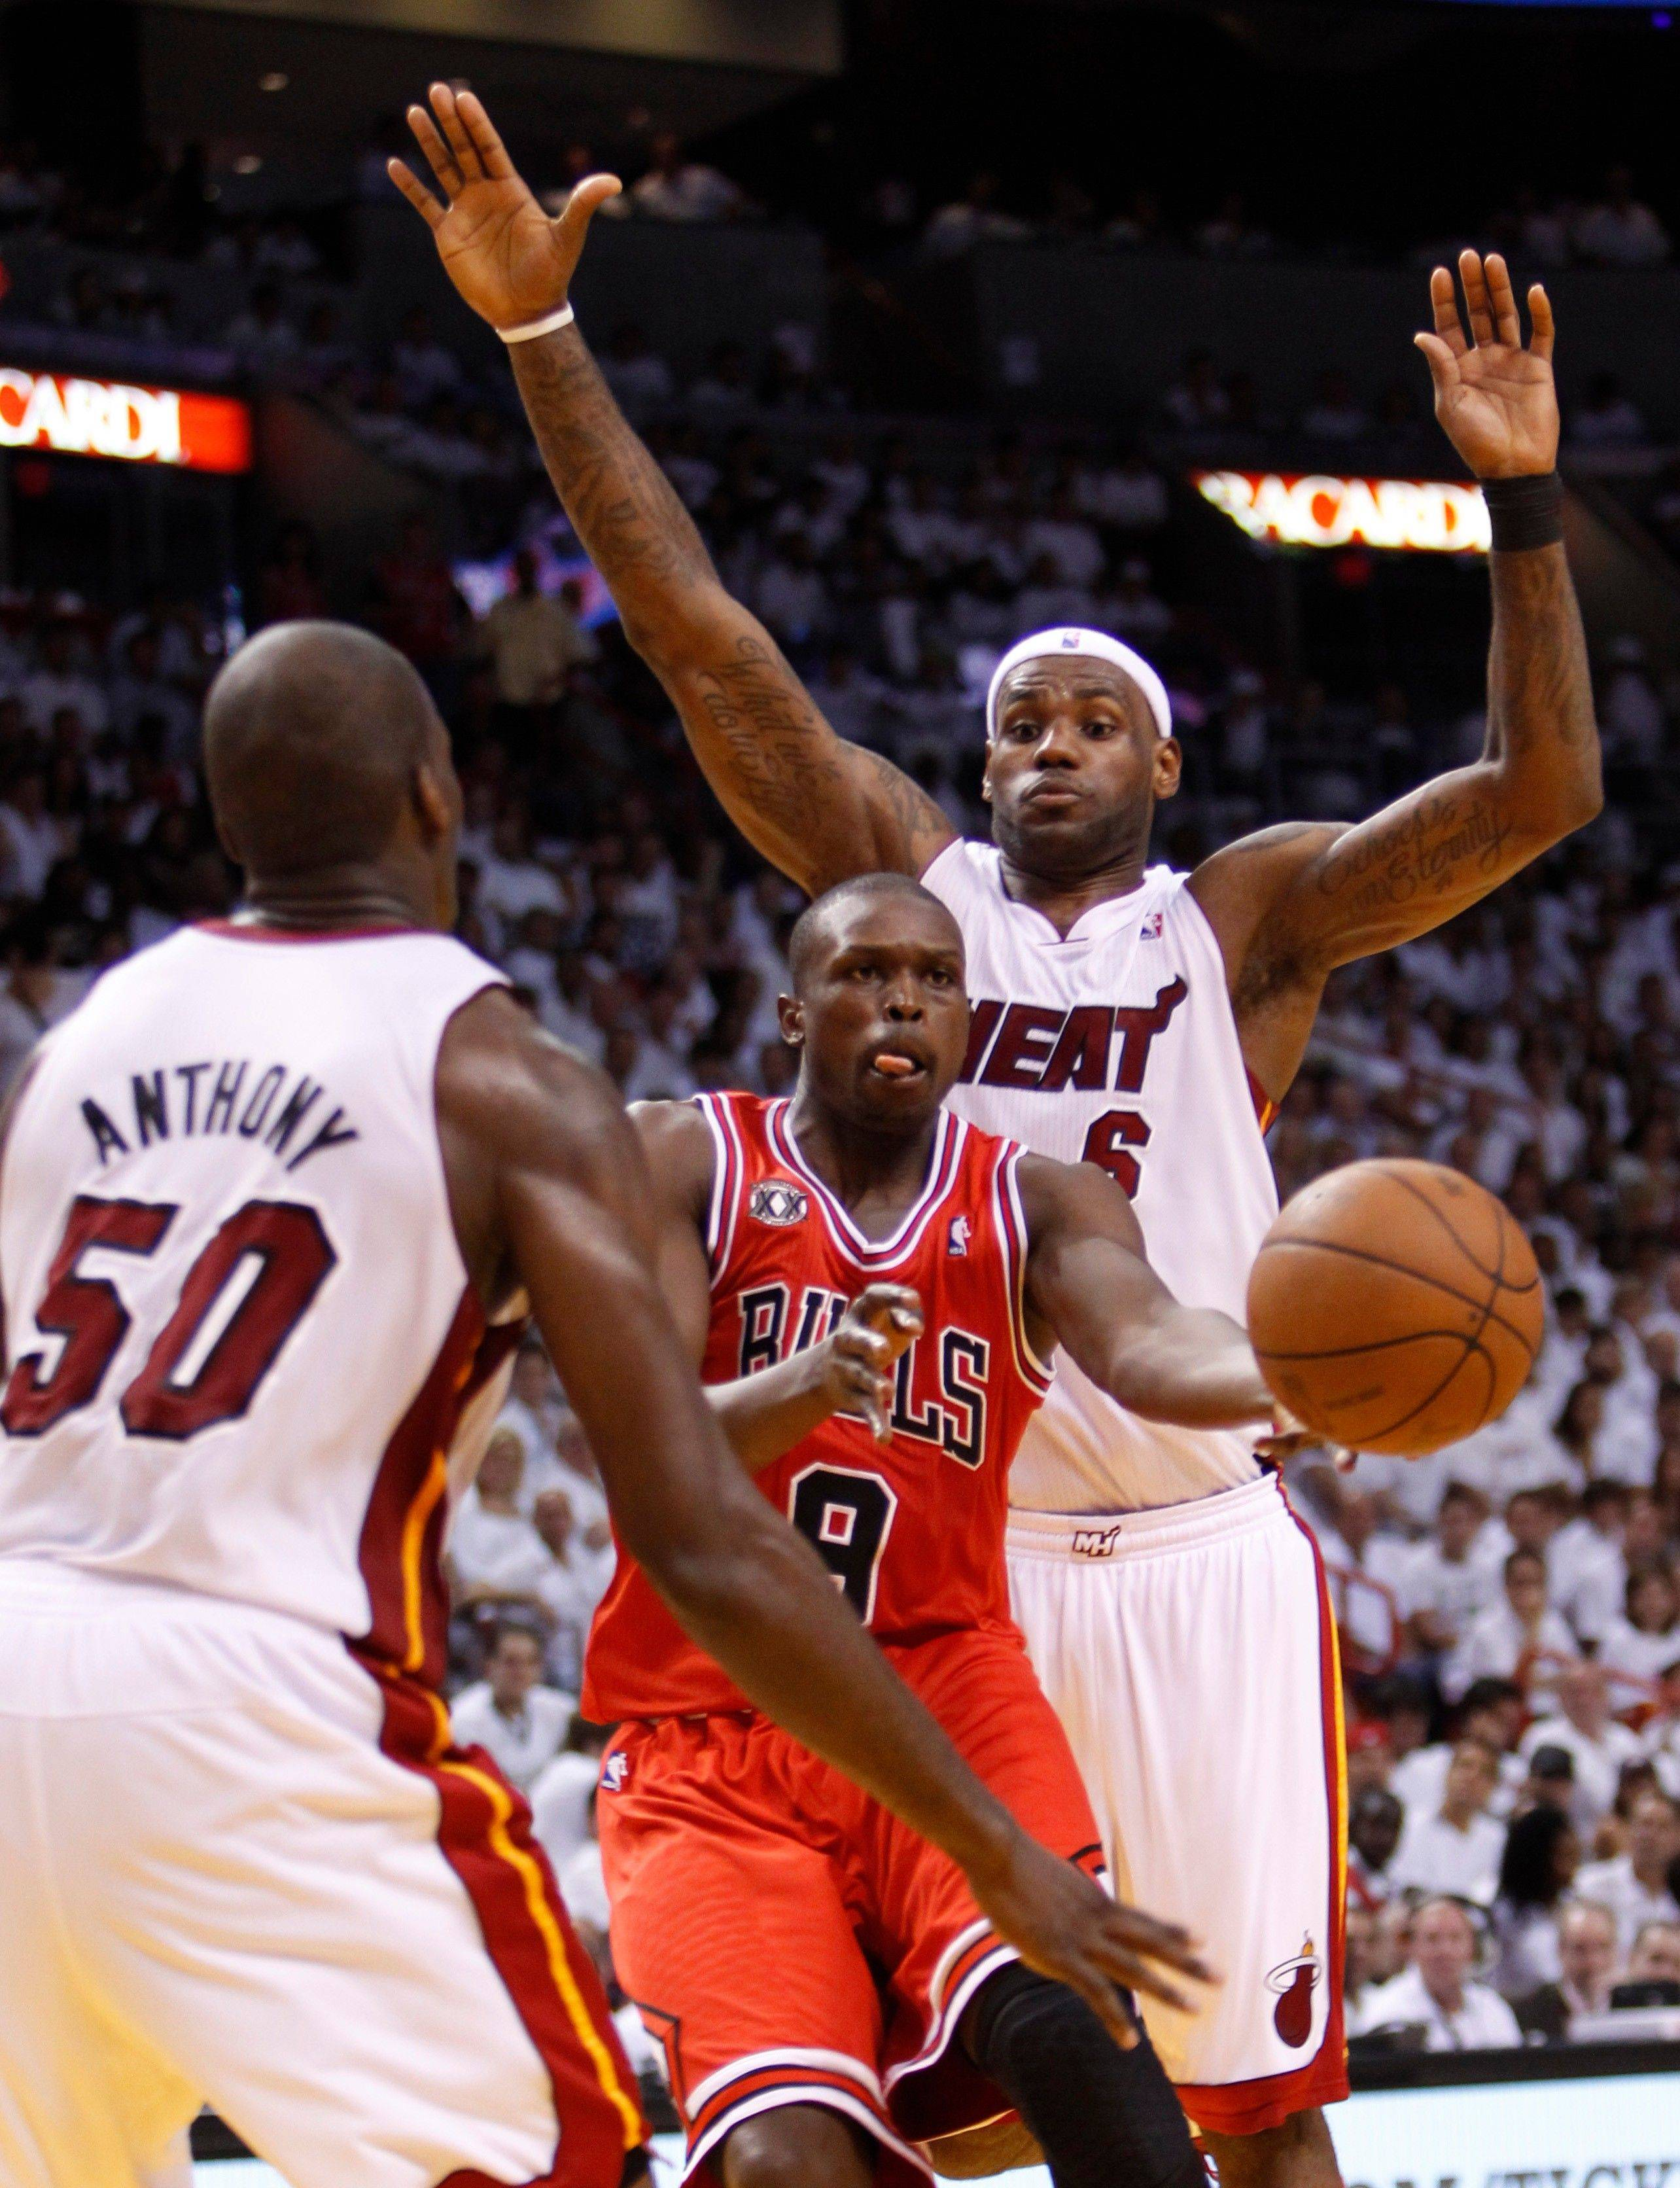 Chicago Bulls' Luol Deng, center, passes to a teammate past Miami Heat's Joel Anthony (50) and LeBron James, rear, during the second half of Game 3 of the NBA Eastern Conference finals basketball series in Miami, Sunday, May 22, 2011.